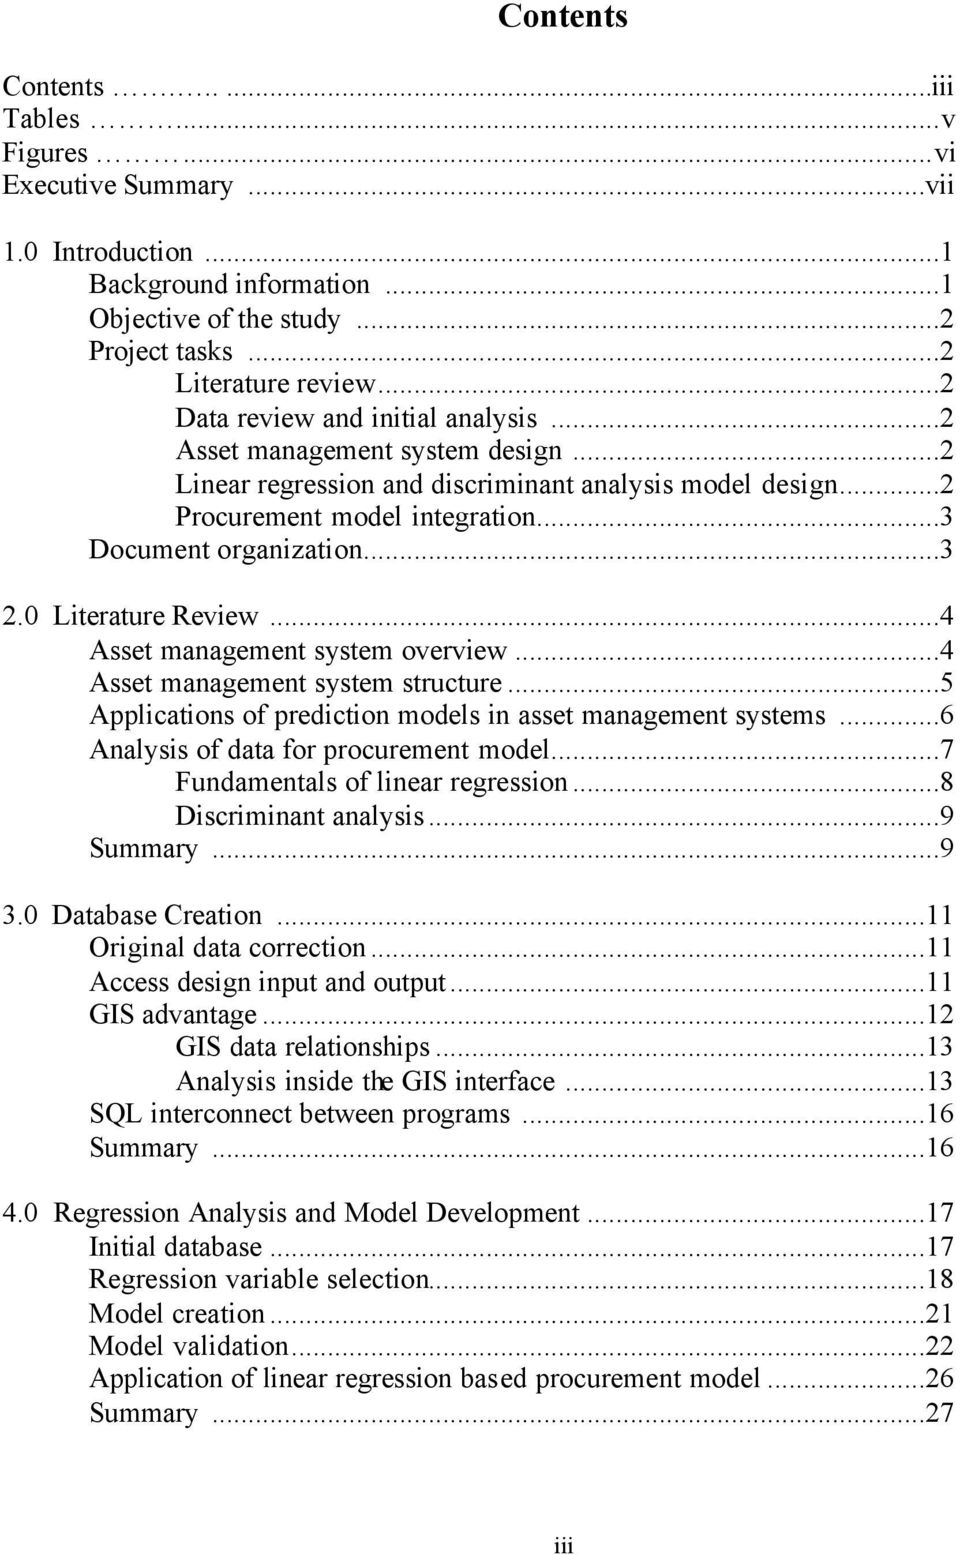 0 Literature Review...4 Asset management system overview...4 Asset management system structure...5 Applications of prediction models in asset management systems.